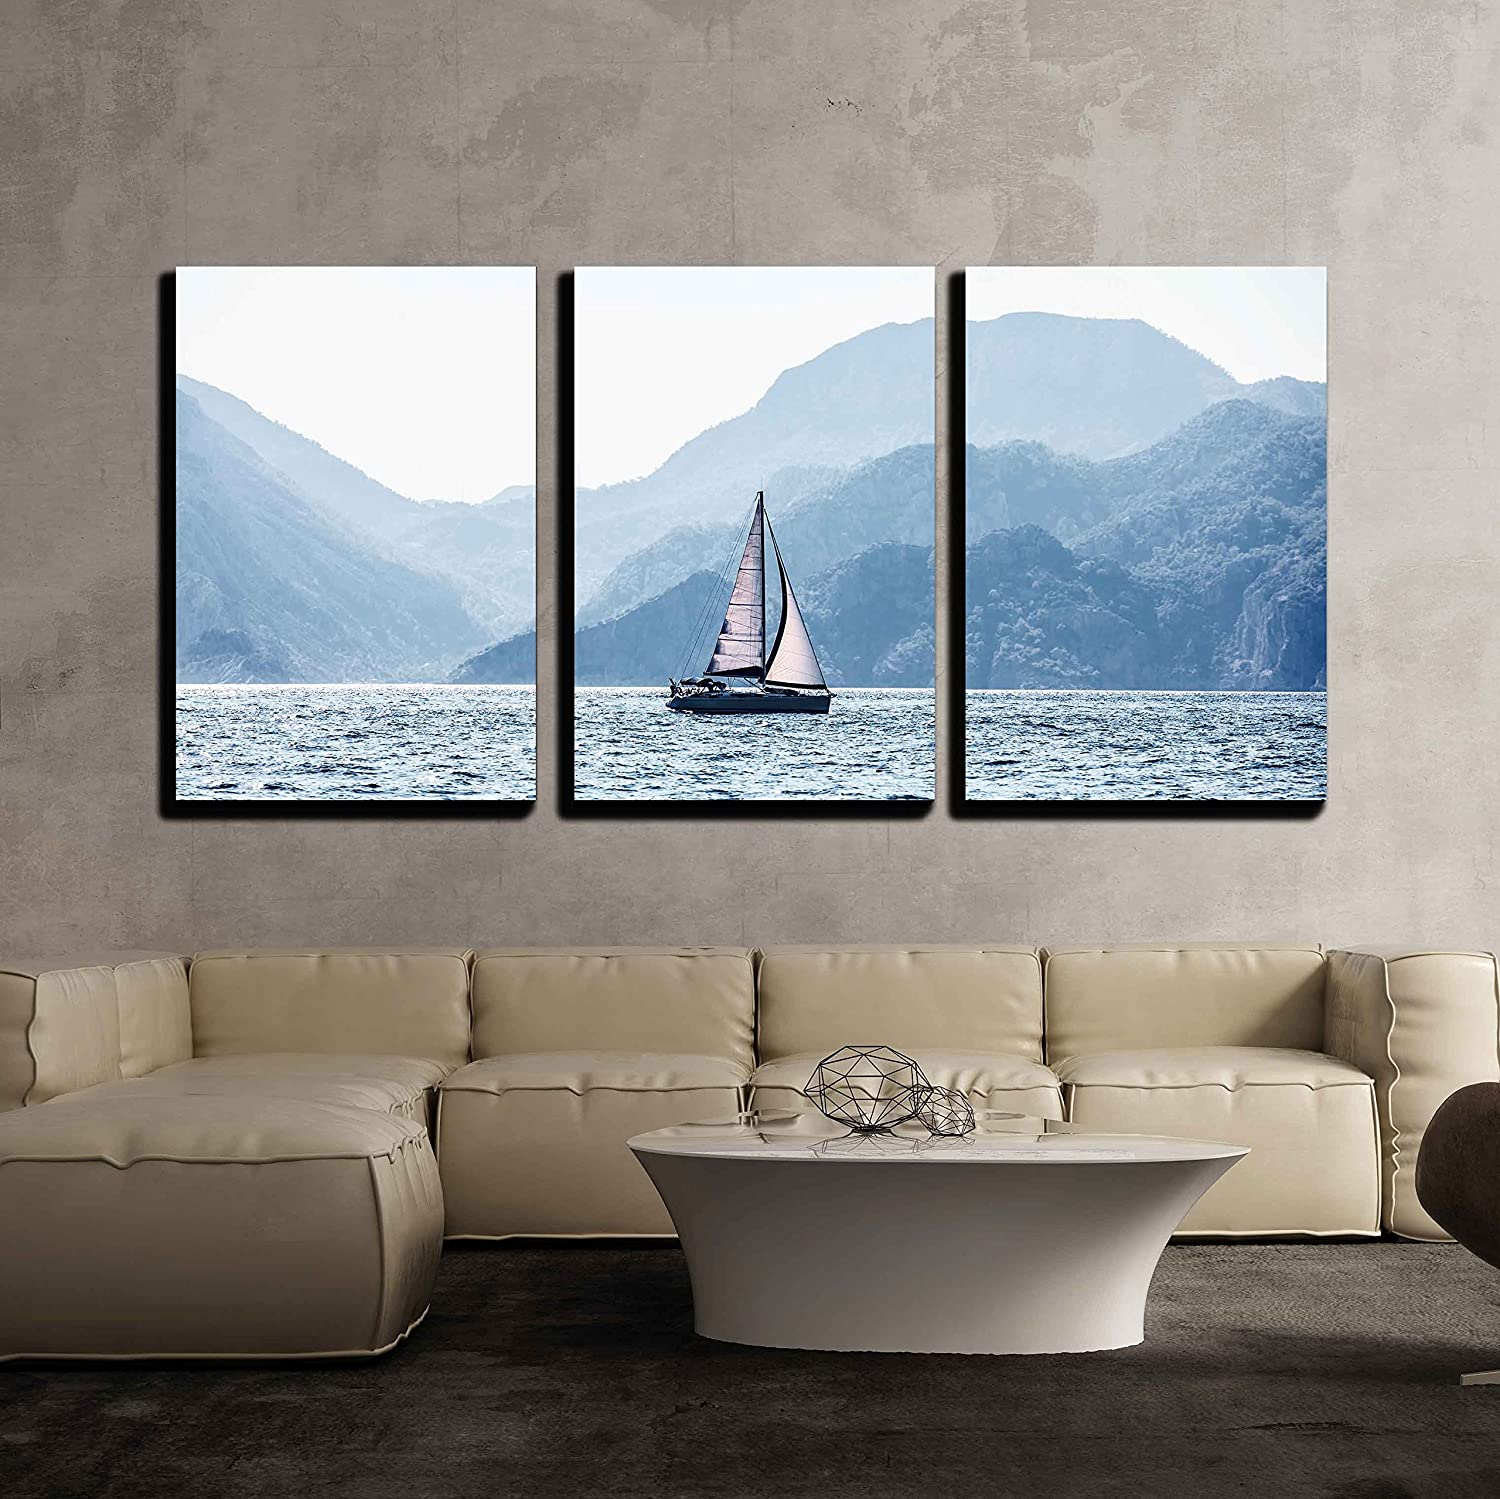 """wall26 - 3 Piece Canvas Wall Art - Beautiful Sea Landscape, Sailboat Sailing on The Distance - Modern Home Decor Stretched and Framed Ready to Hang - 16""""x24""""x3 Panels"""